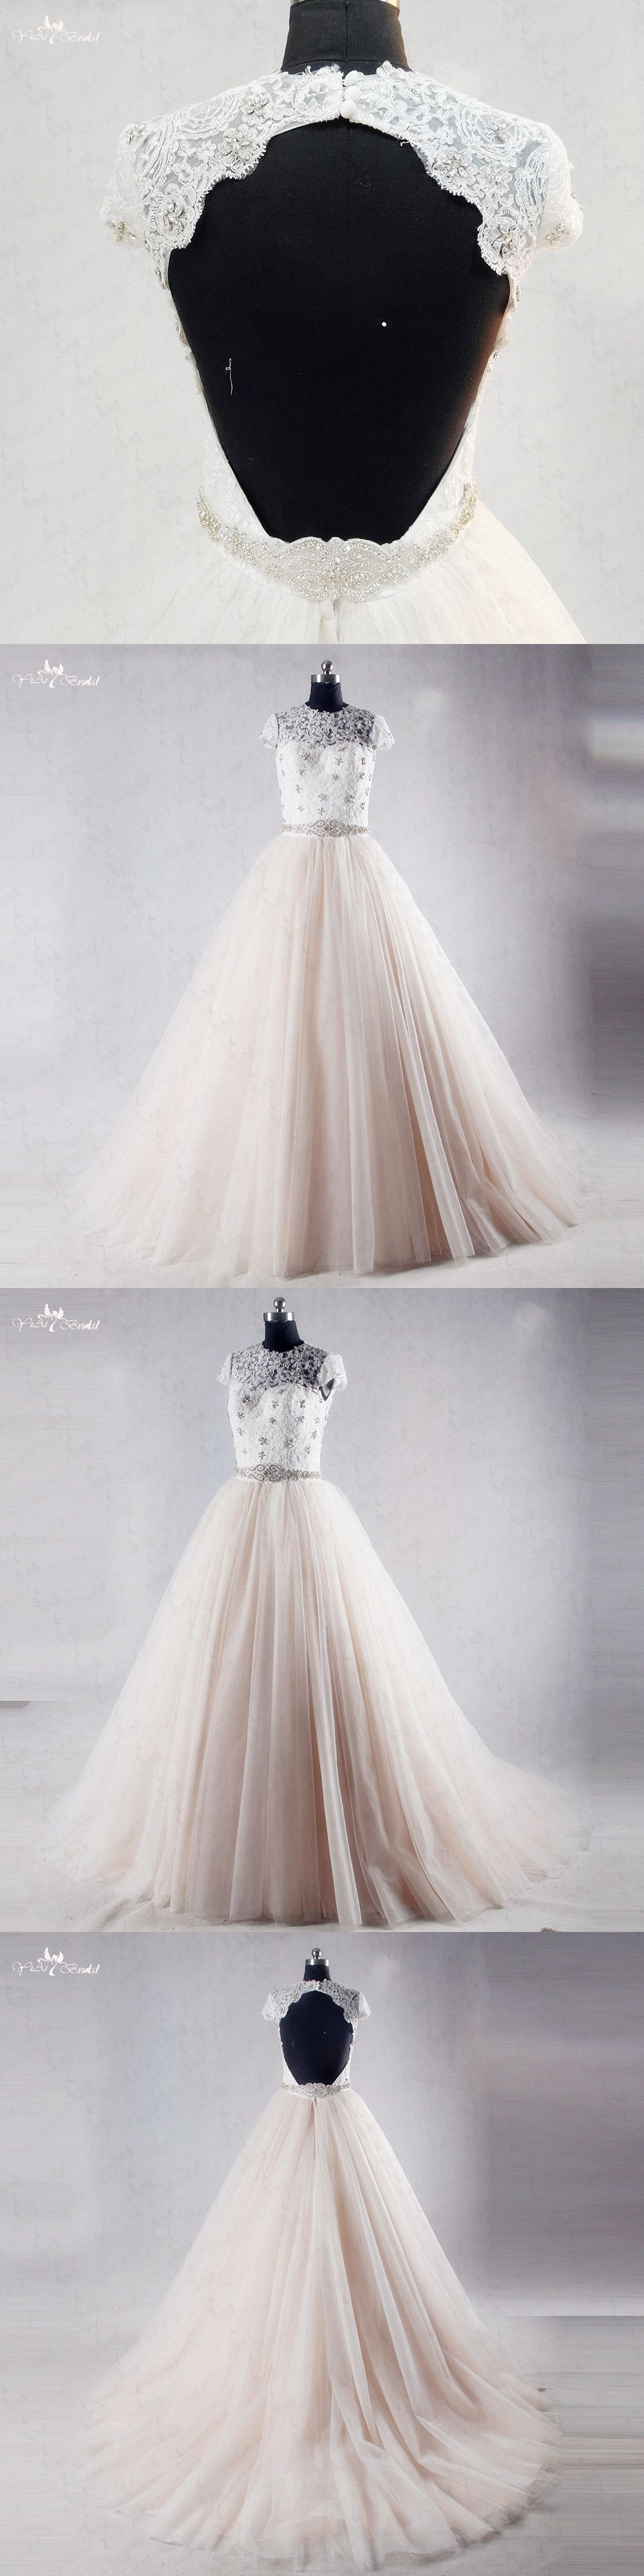 RSW1033 Puffy Tulle Skirt Cap Sleeves O Neckline Mocha Colored Backless  Wedding Dress 42f441d0bef8